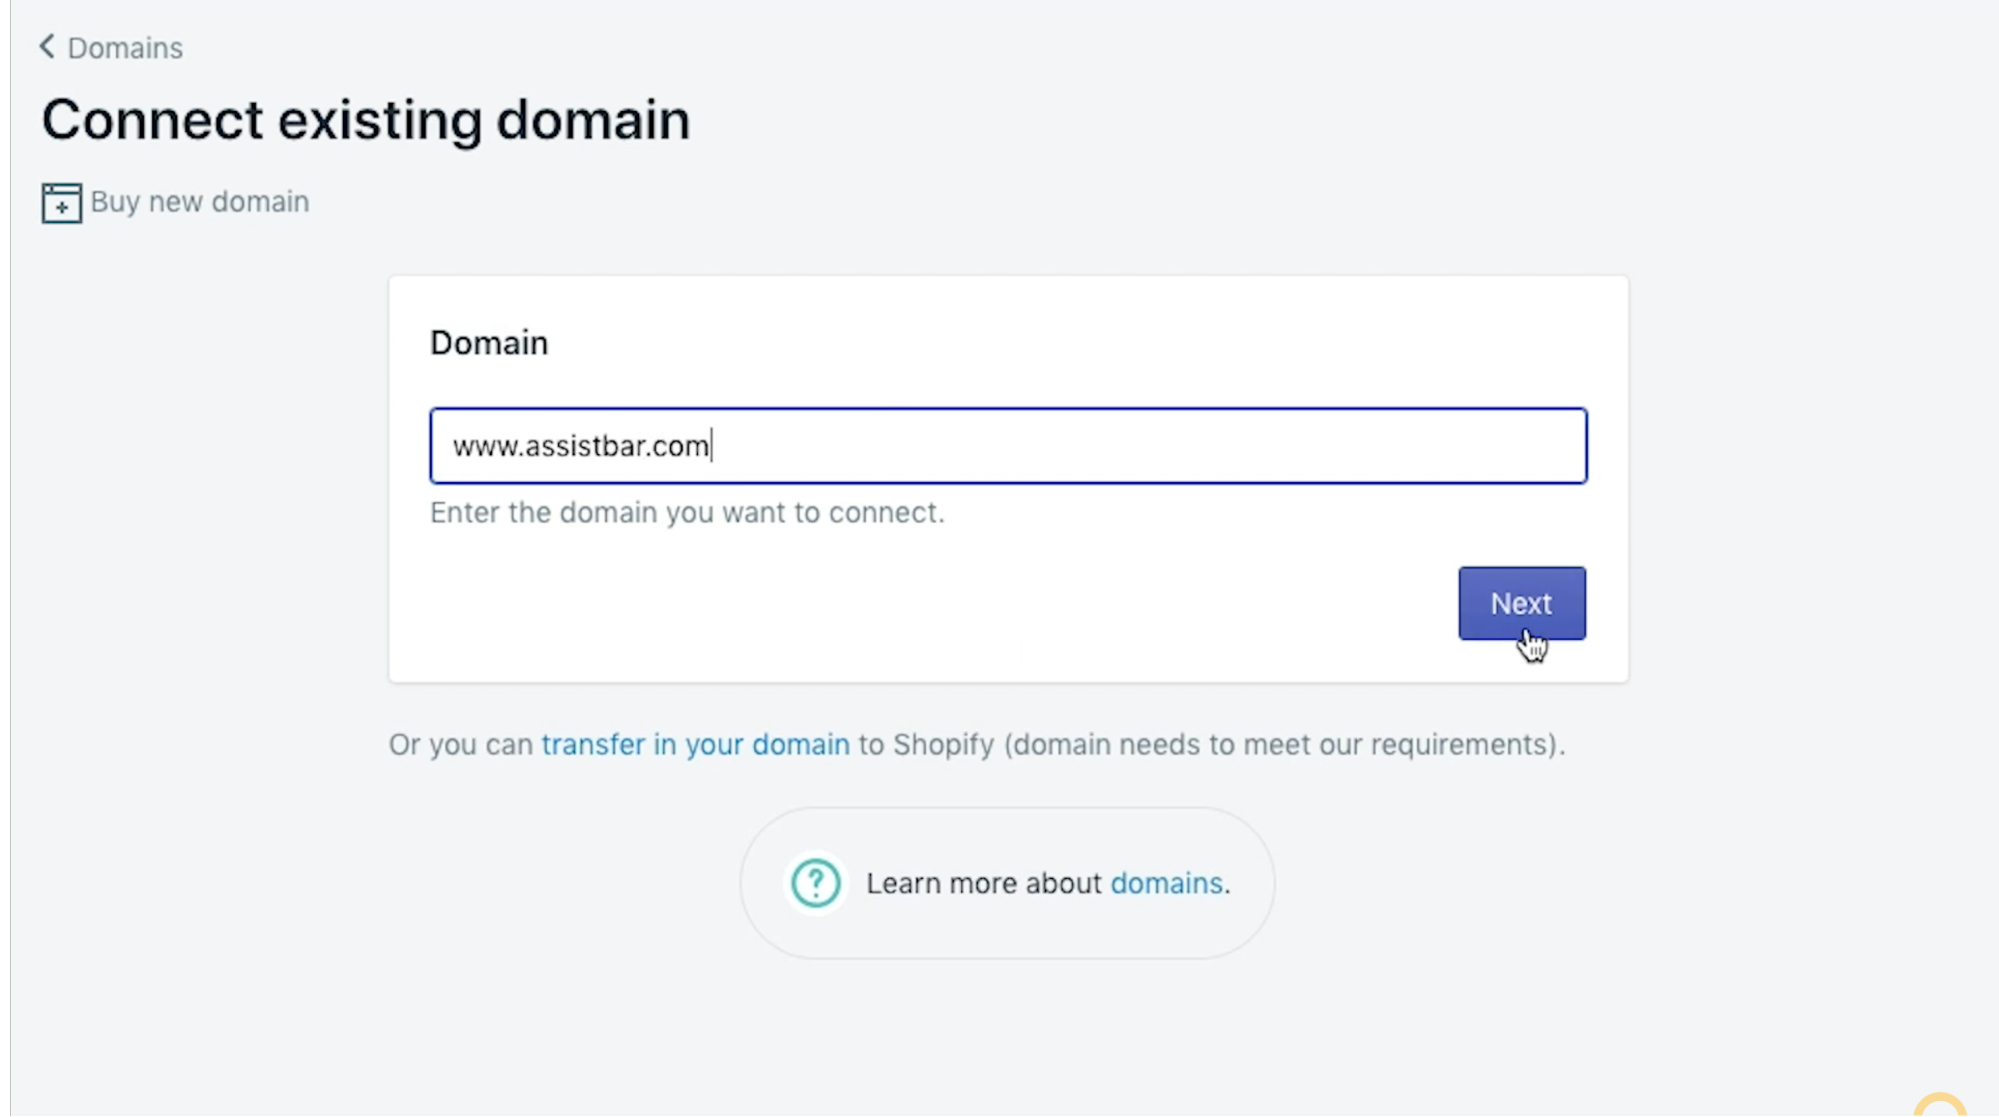 Input your domain name and click Next